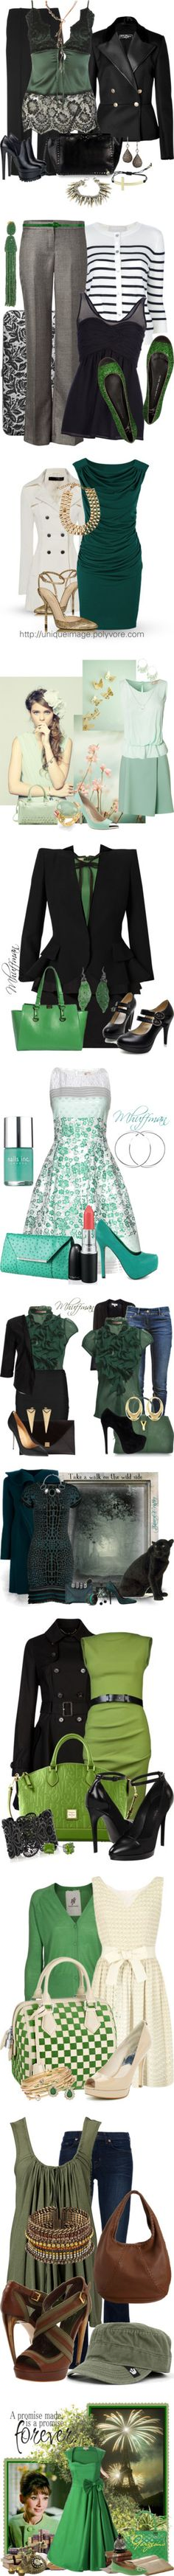 """""""Green With Envy"""". Don't really like the lighter few, but the darker sets, definitely want them in my closet. A Girl Like Me, Cool Coats, Cool Outfits, Fashion Outfits, Skirts For Sale, Kinds Of Clothes, Work Attire, Long Sweaters, Slytherin"""